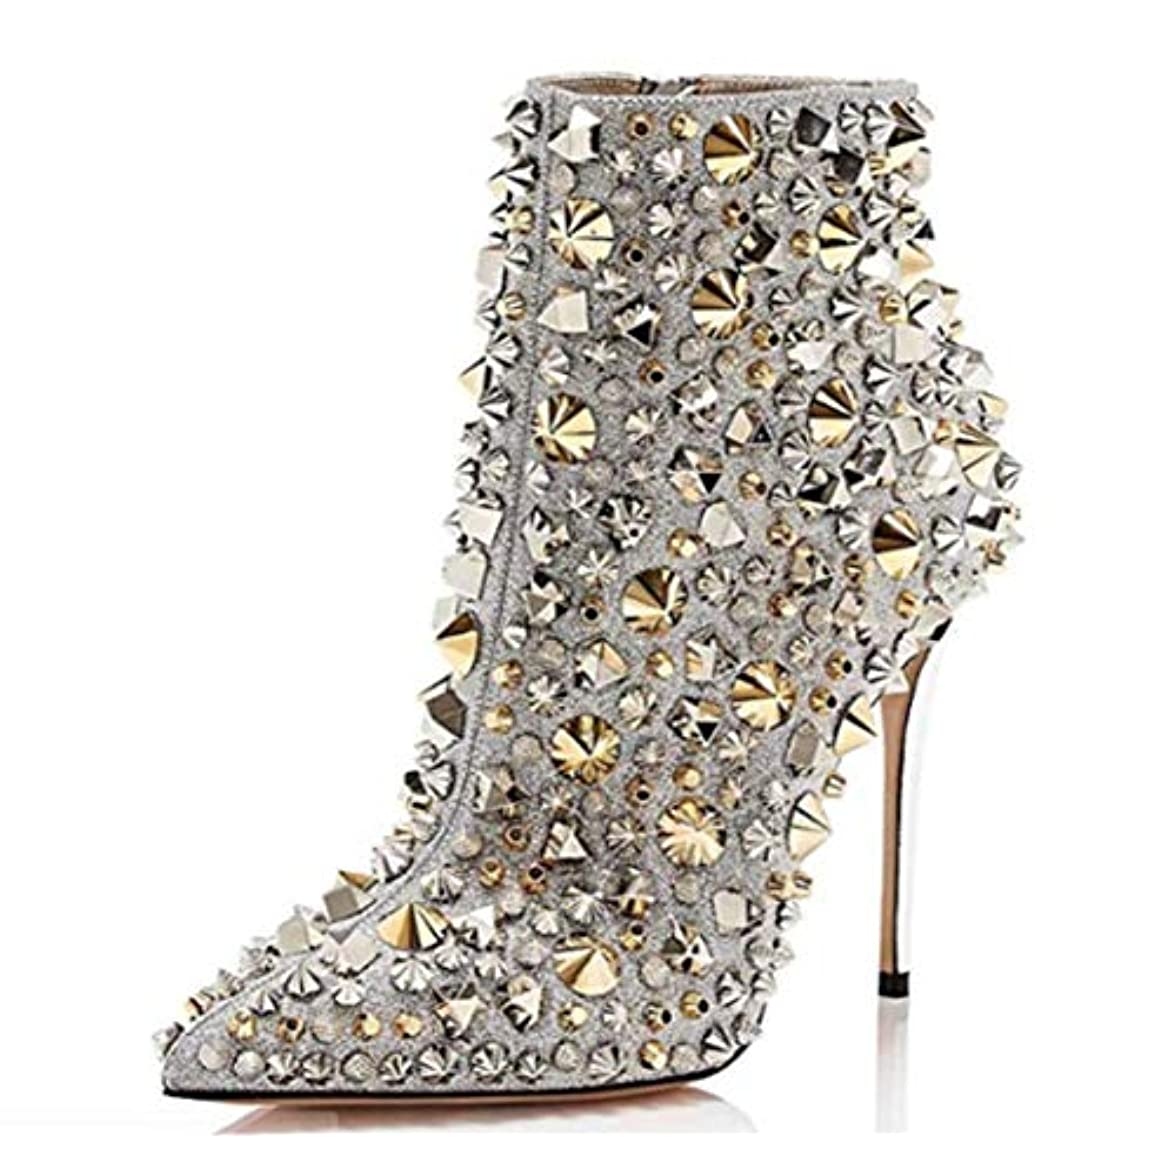 Shiney Stivaletti Da Donna A Punta Rivetto Street Shoot Modello Catwalk Boots Tacco Alto Stiletto Fashion Nightclub